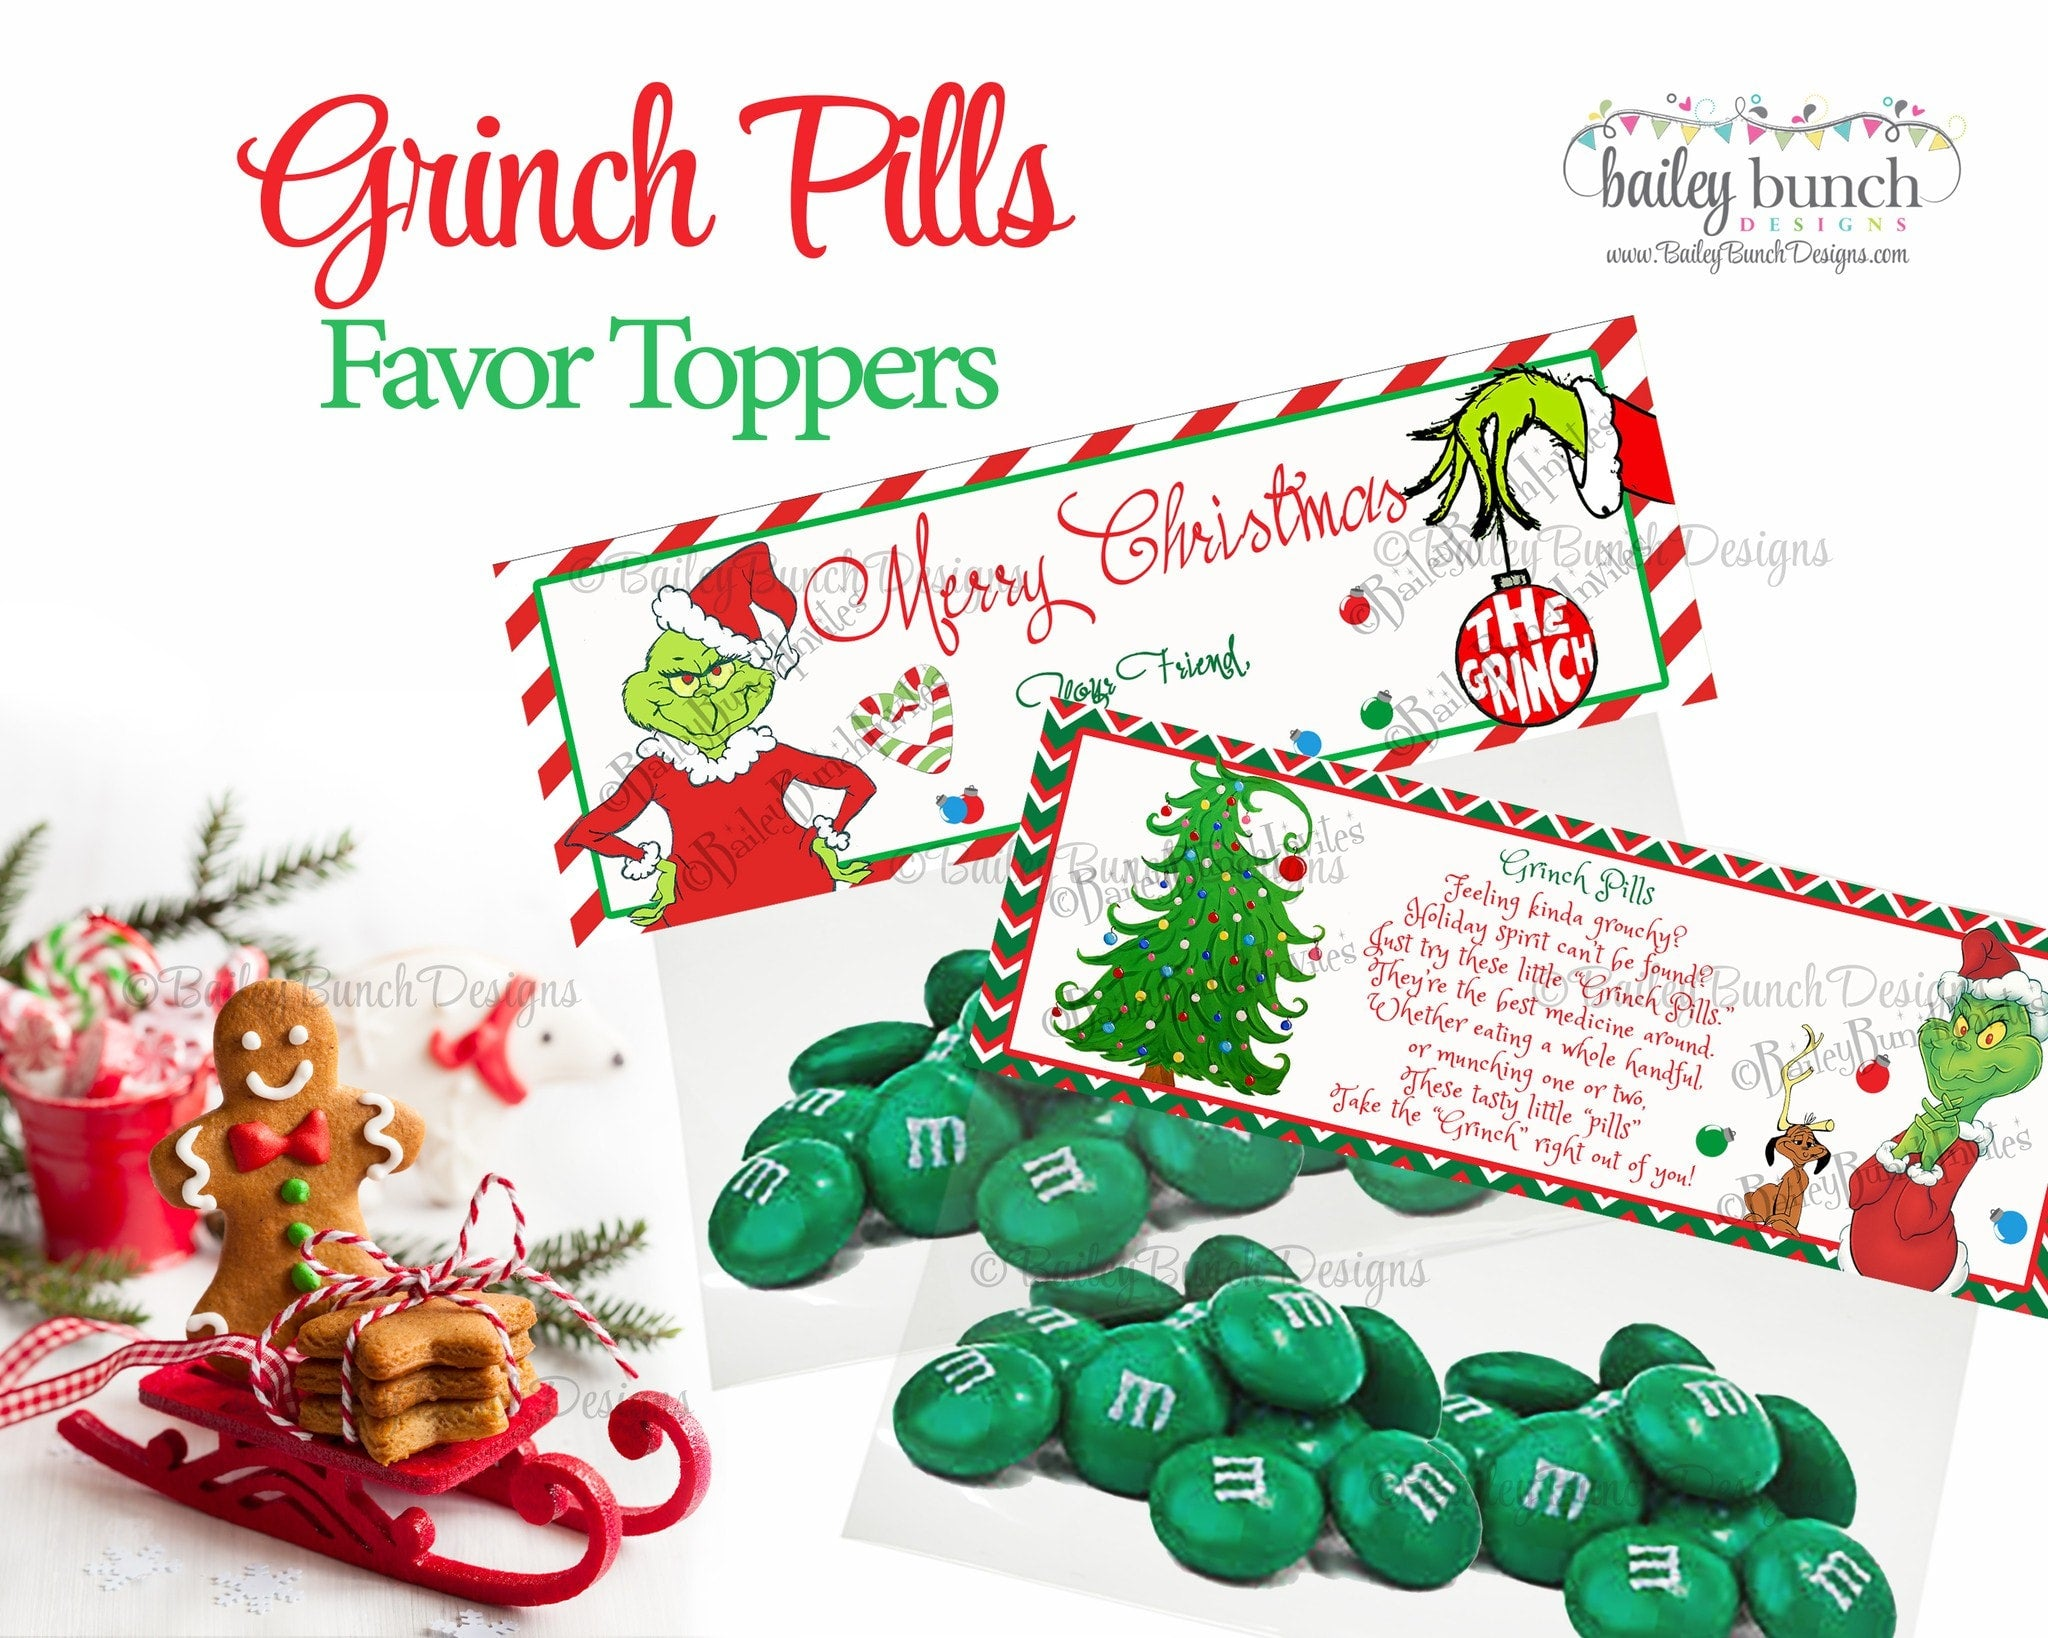 photo relating to Grinch Pills Printable named Grinch Products Deal with Baggage, Xmas Toppers IDGRINCH0520